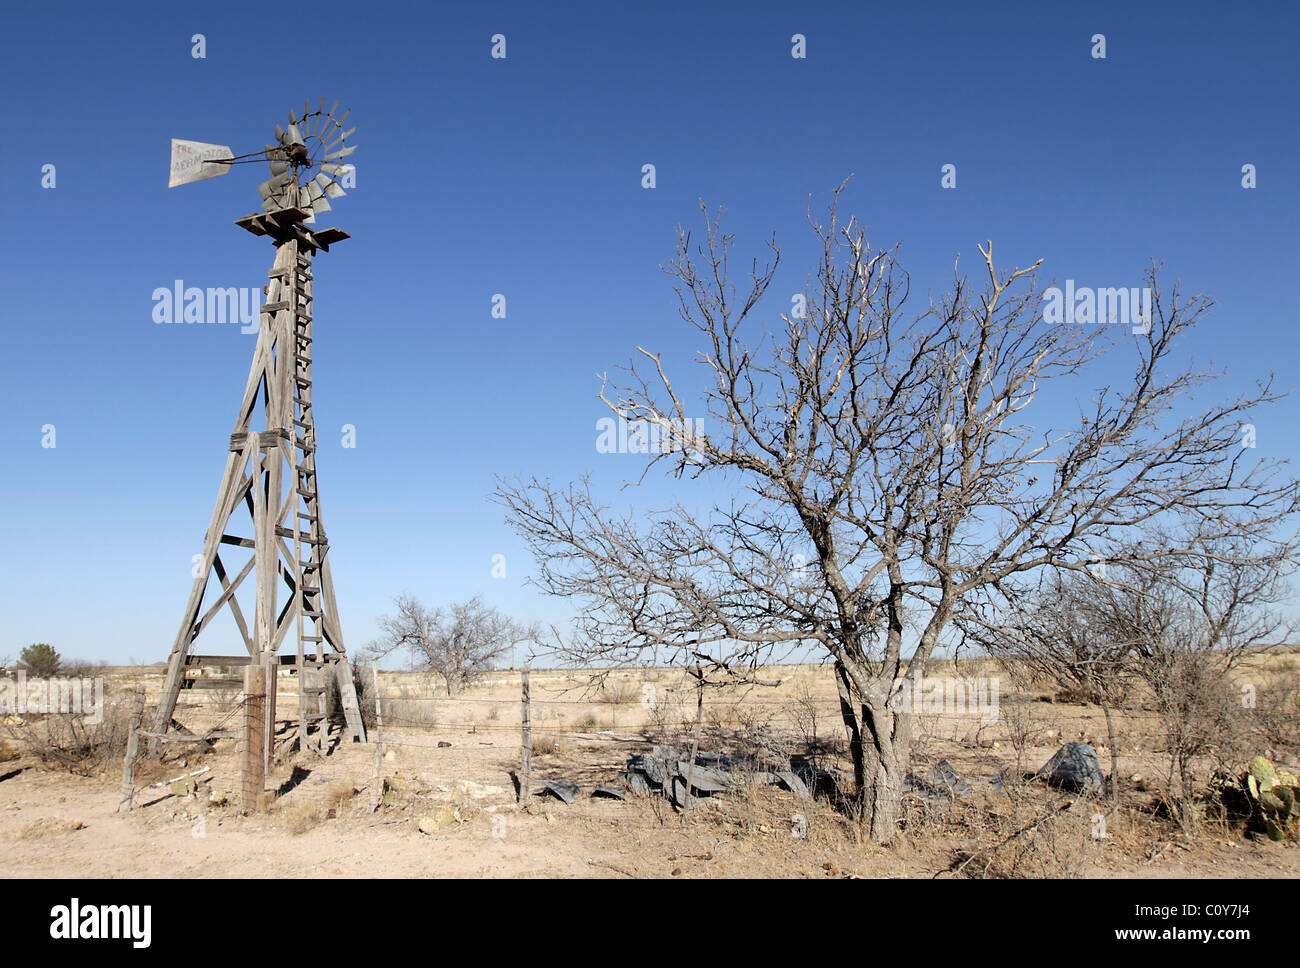 Old wind mill used to pump water in Far West Texas, near the town of Marathon. - Stock Image